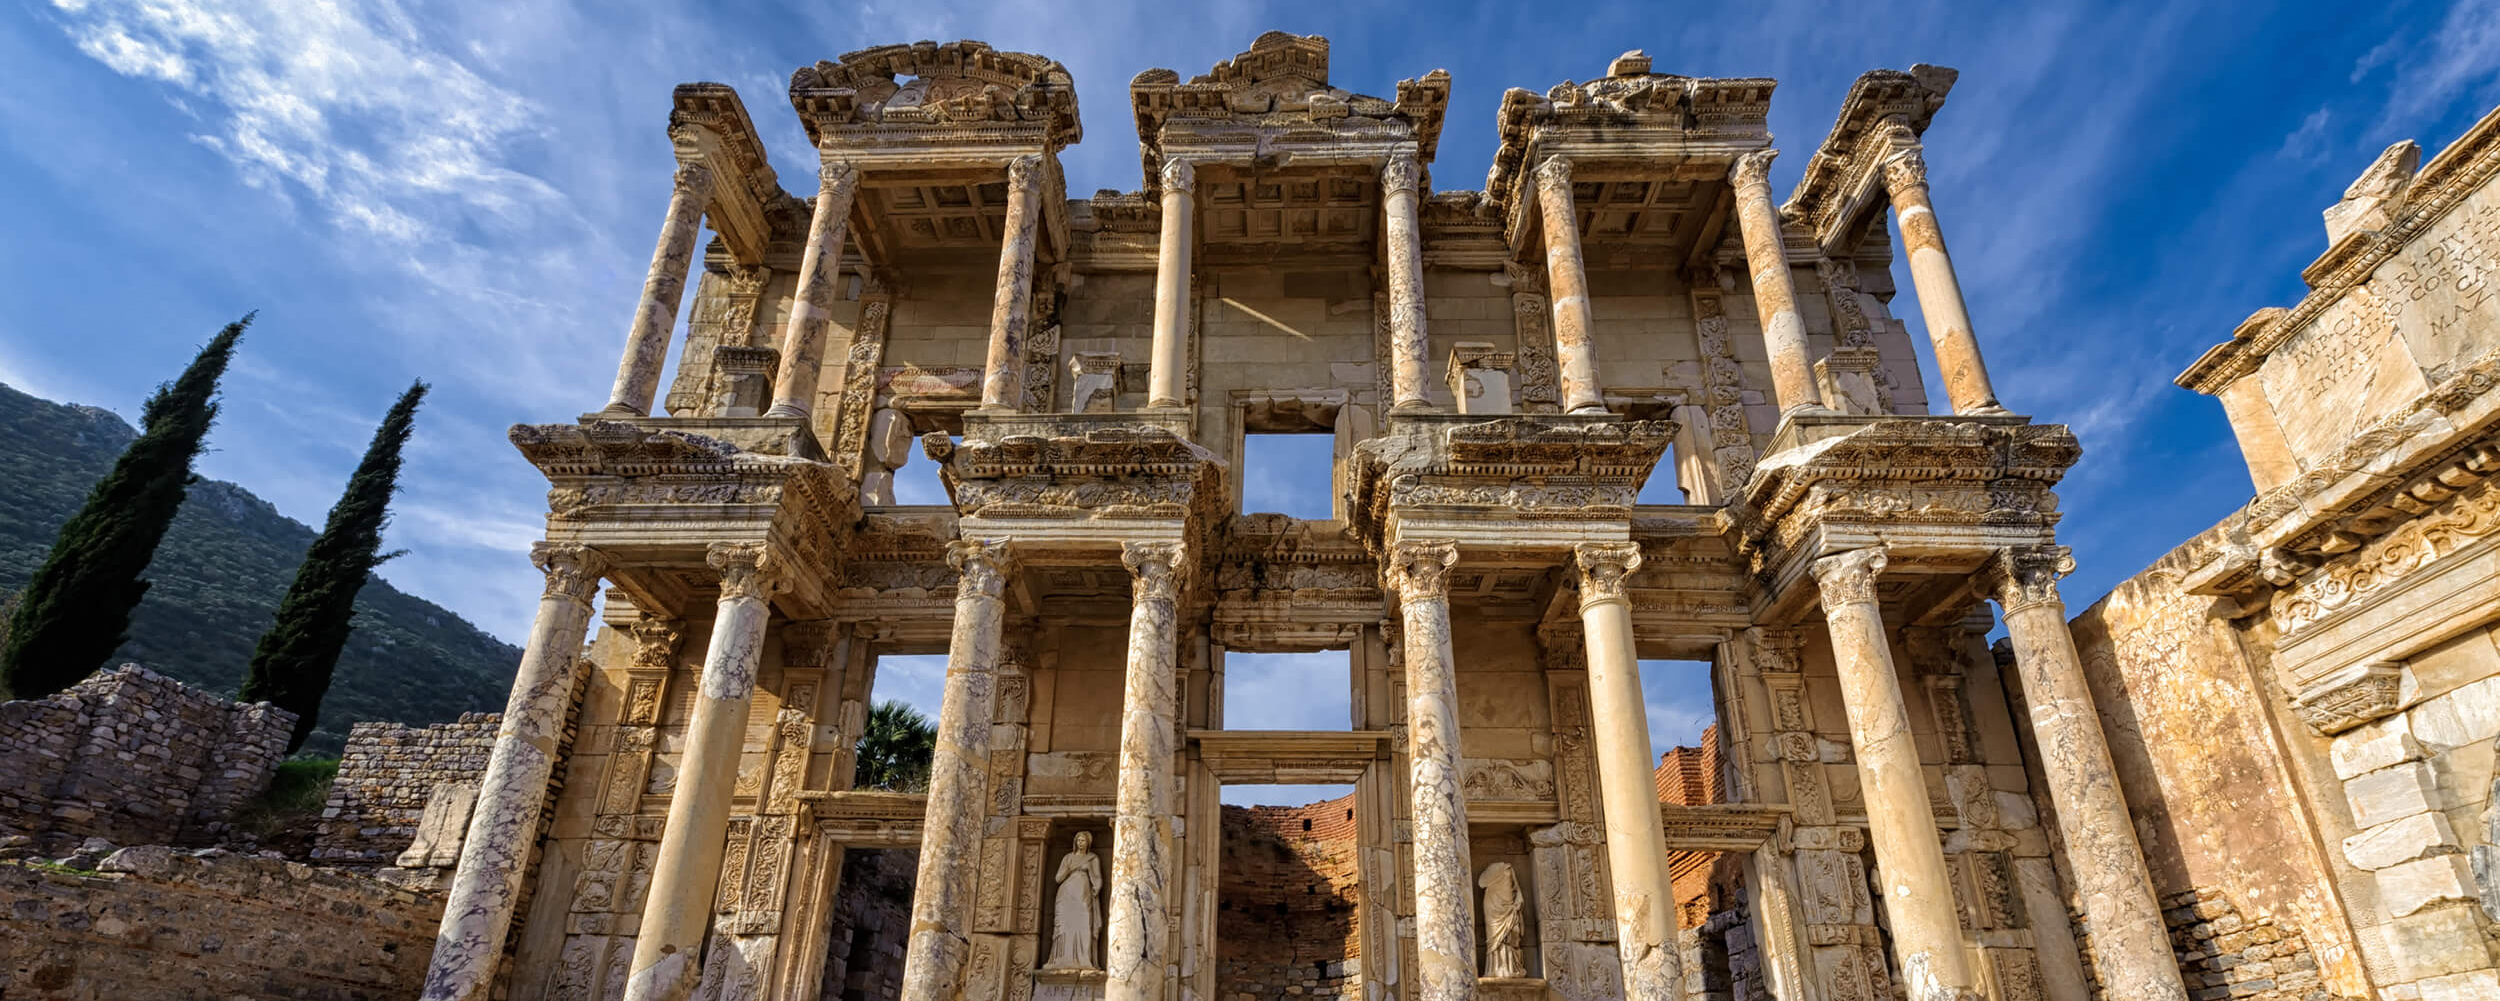 The Library of Celsus in Ephesus, Anatolia